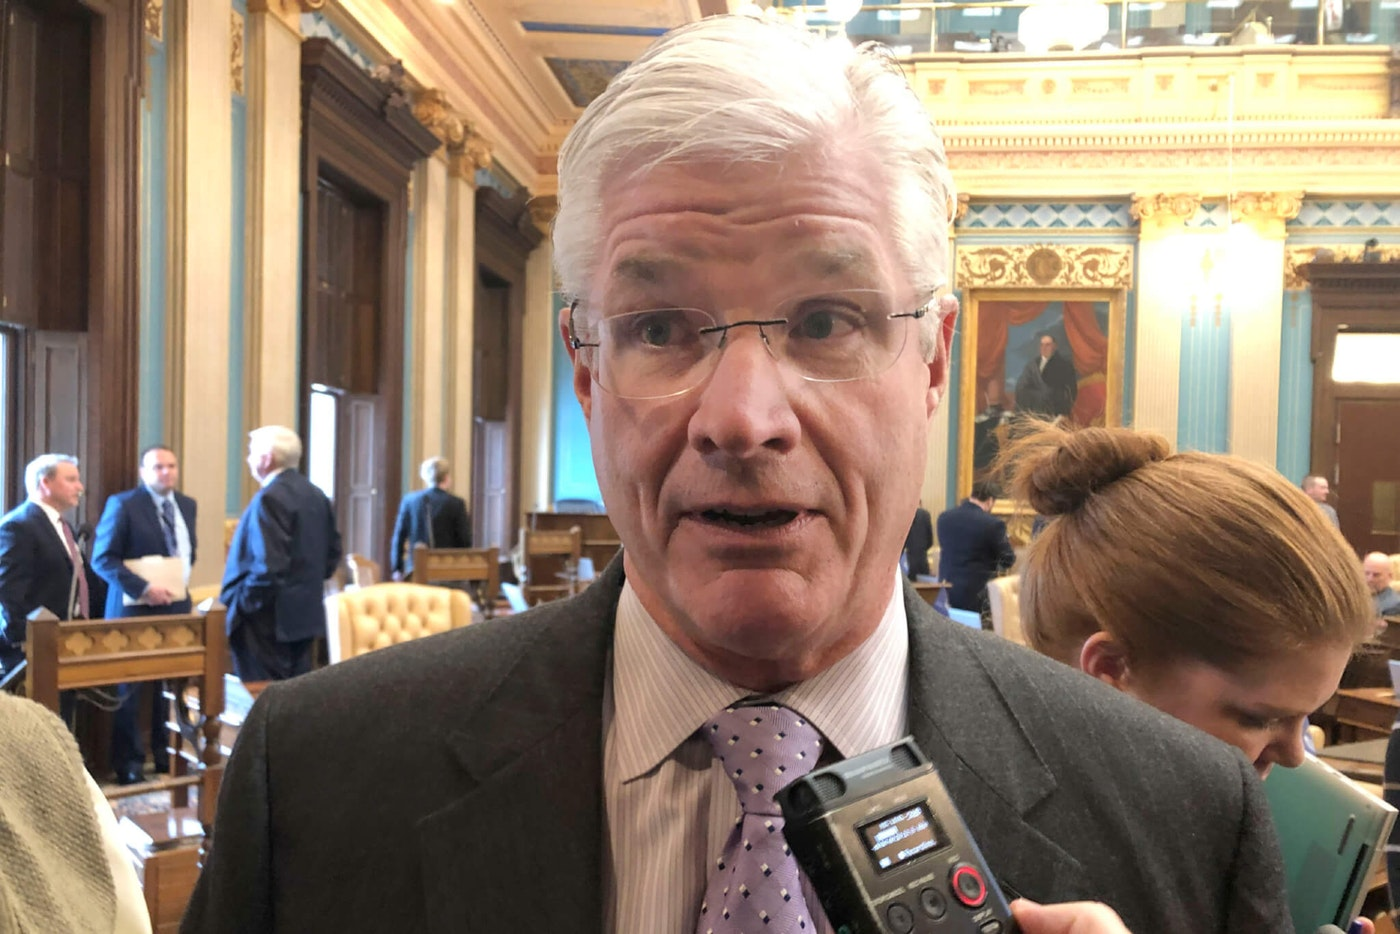 """FILE - In this Dec. 10, 2019, file photo, Michigan Senate Majority Leader Mike Shirkey, R-Clarklake, speaks to reporters inside the Senate in Lansing, Mich. Shirkey is opposing legislation that would ease Michigan election clerks' ability to process an expected influx of absentee ballots, saying it would set a """"dangerous precedent."""" Shirkey's stance — announced Wednesday, Feb. 19, 2020,— makes it unlikely that the proposed change will be enacted before the November presidential election. (AP Photo/David Eggert, File)"""